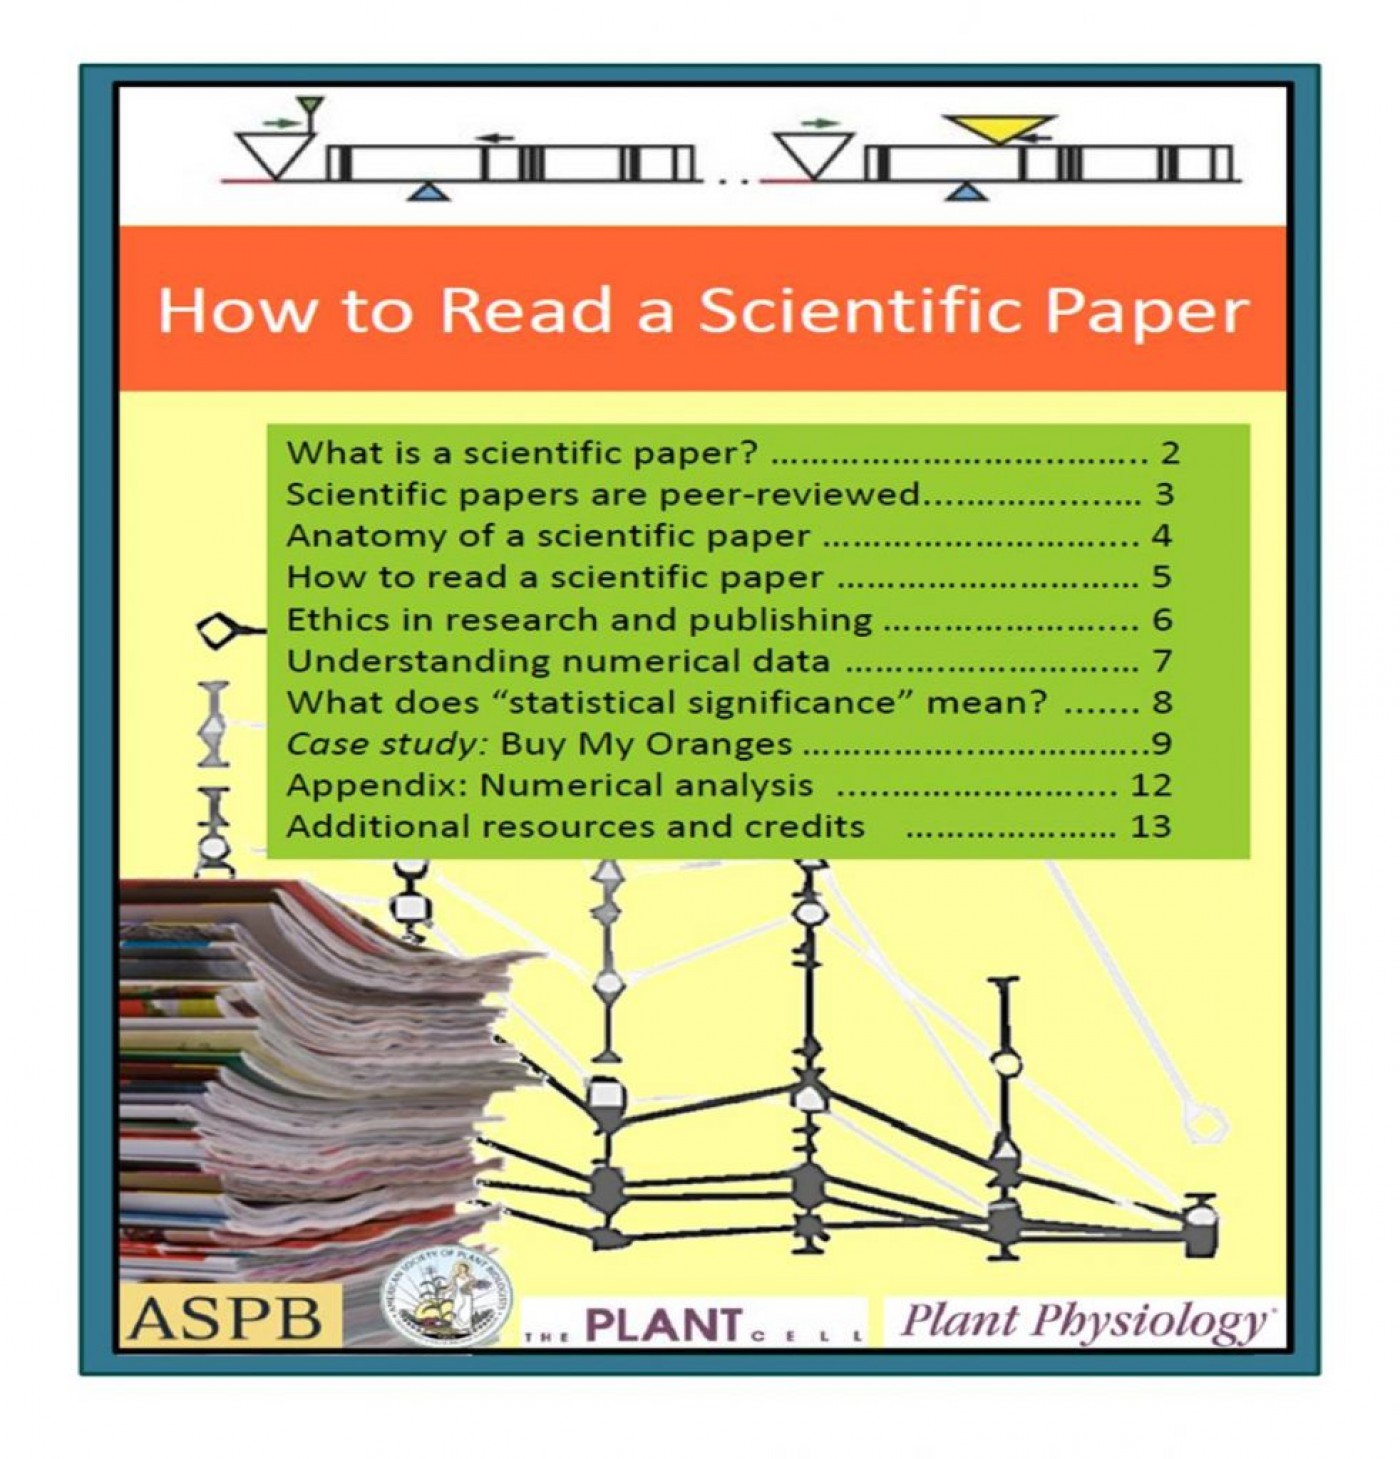 008 Picture1 982x1024 Data Science Researchs Pdf Sensational Research Papers 2018 1400